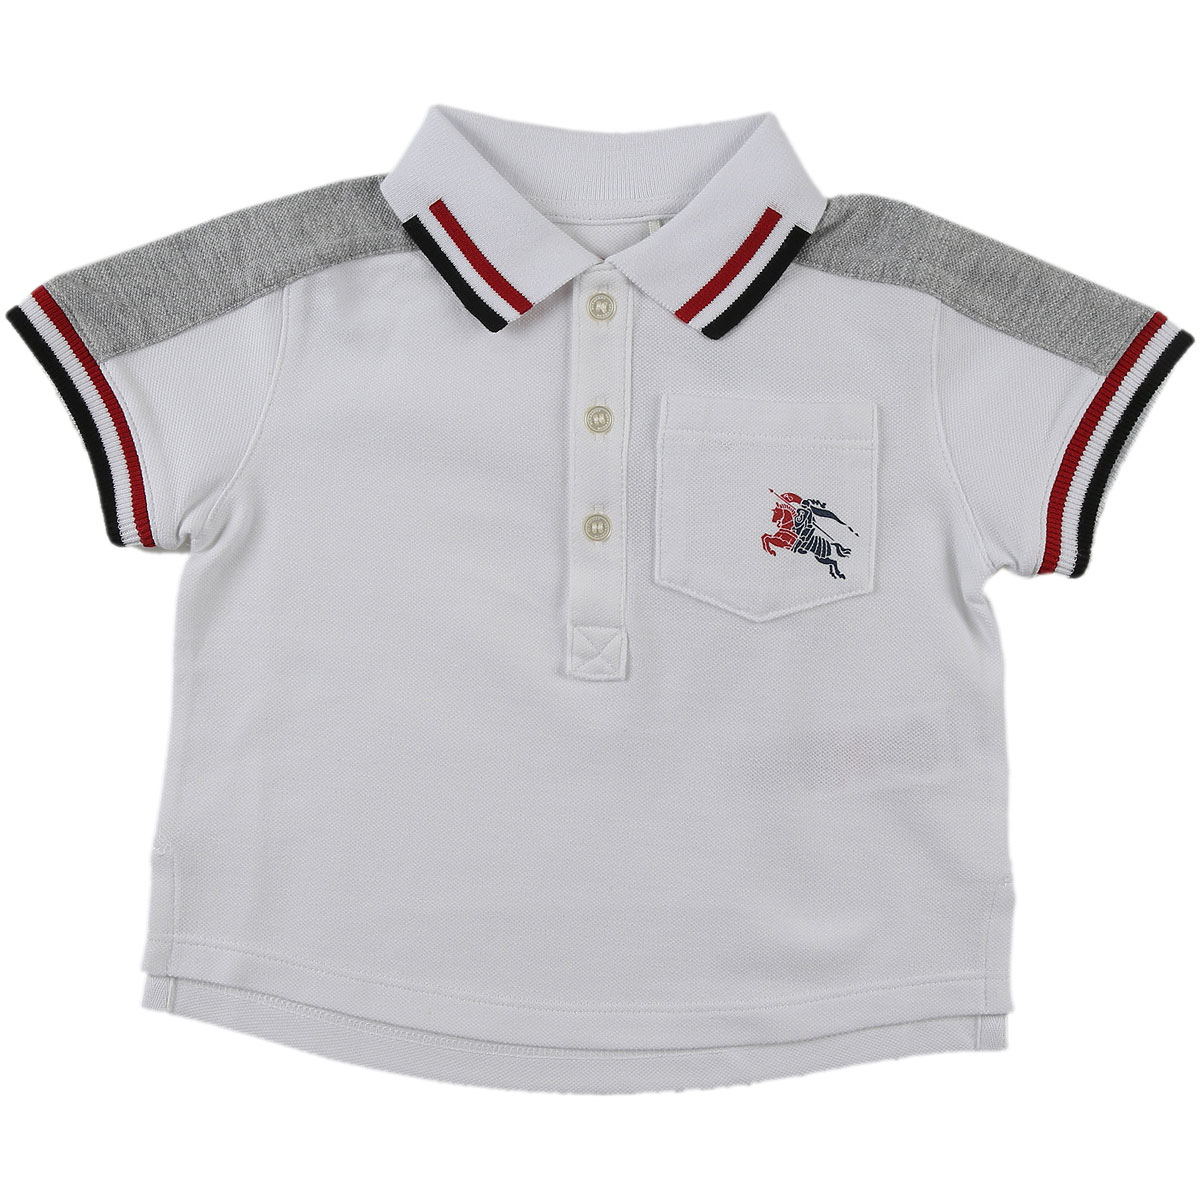 Image of Burberry Baby Polo Shirt for Boys, White, Cotton, 2017, 18M 2Y 3Y 6M